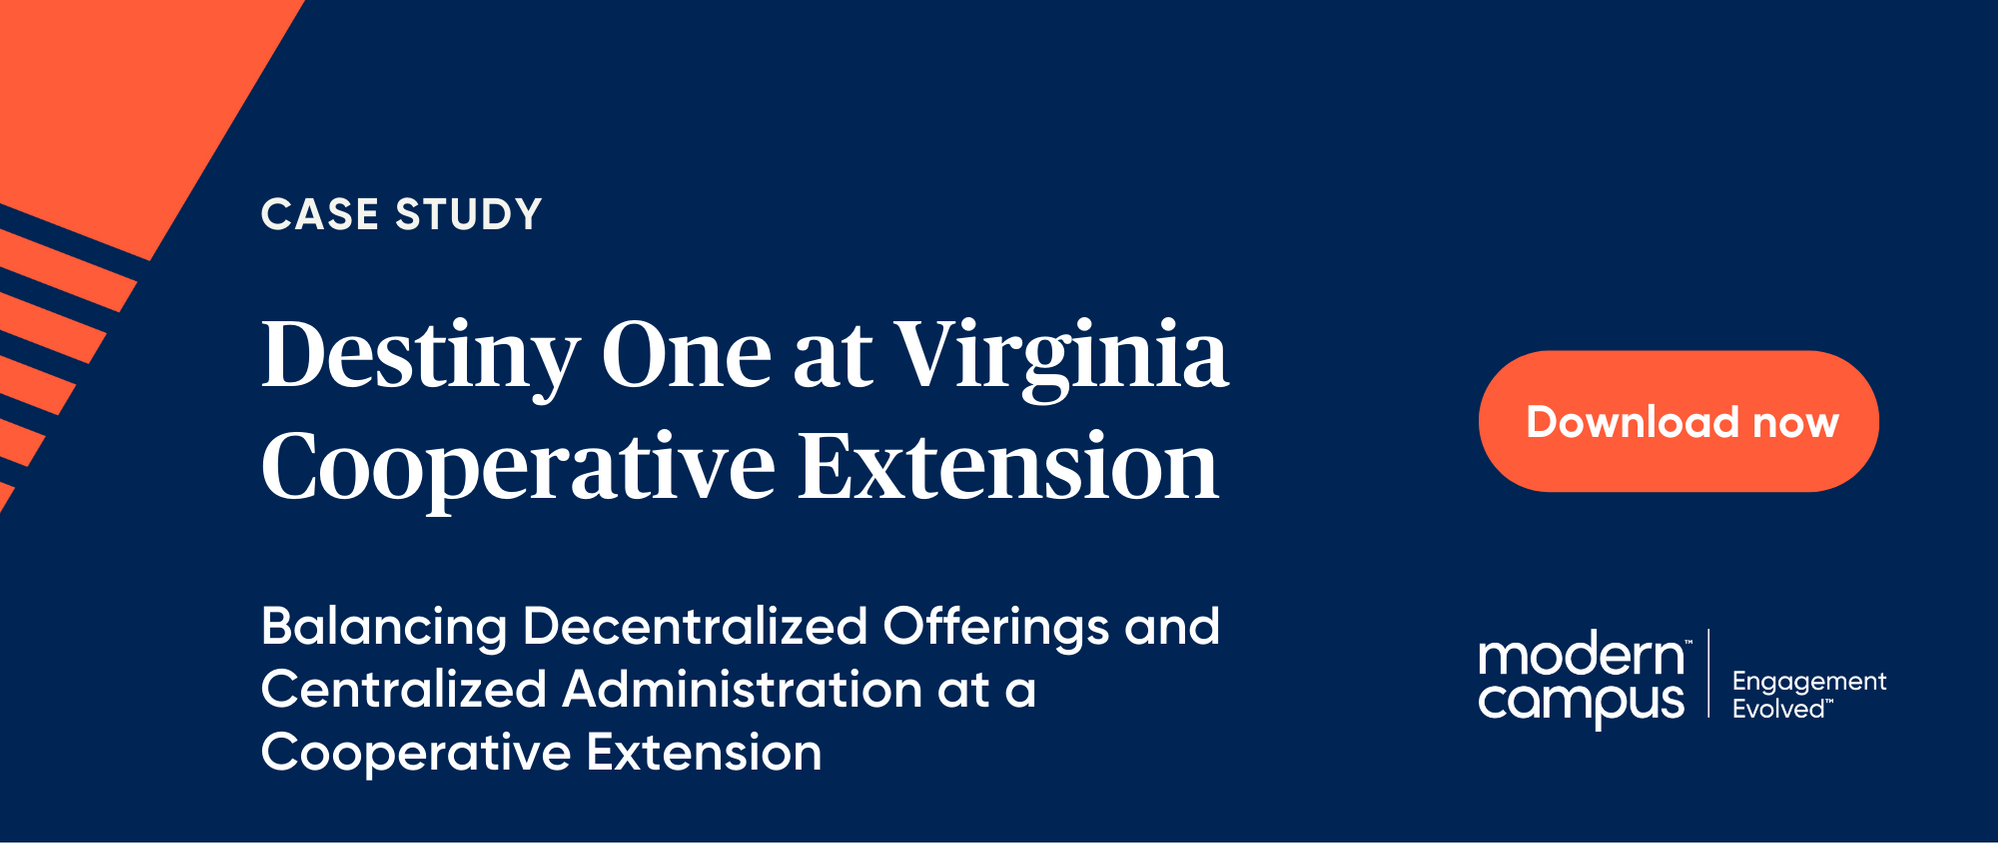 Download the Virginia Cooperative Extension case study now!